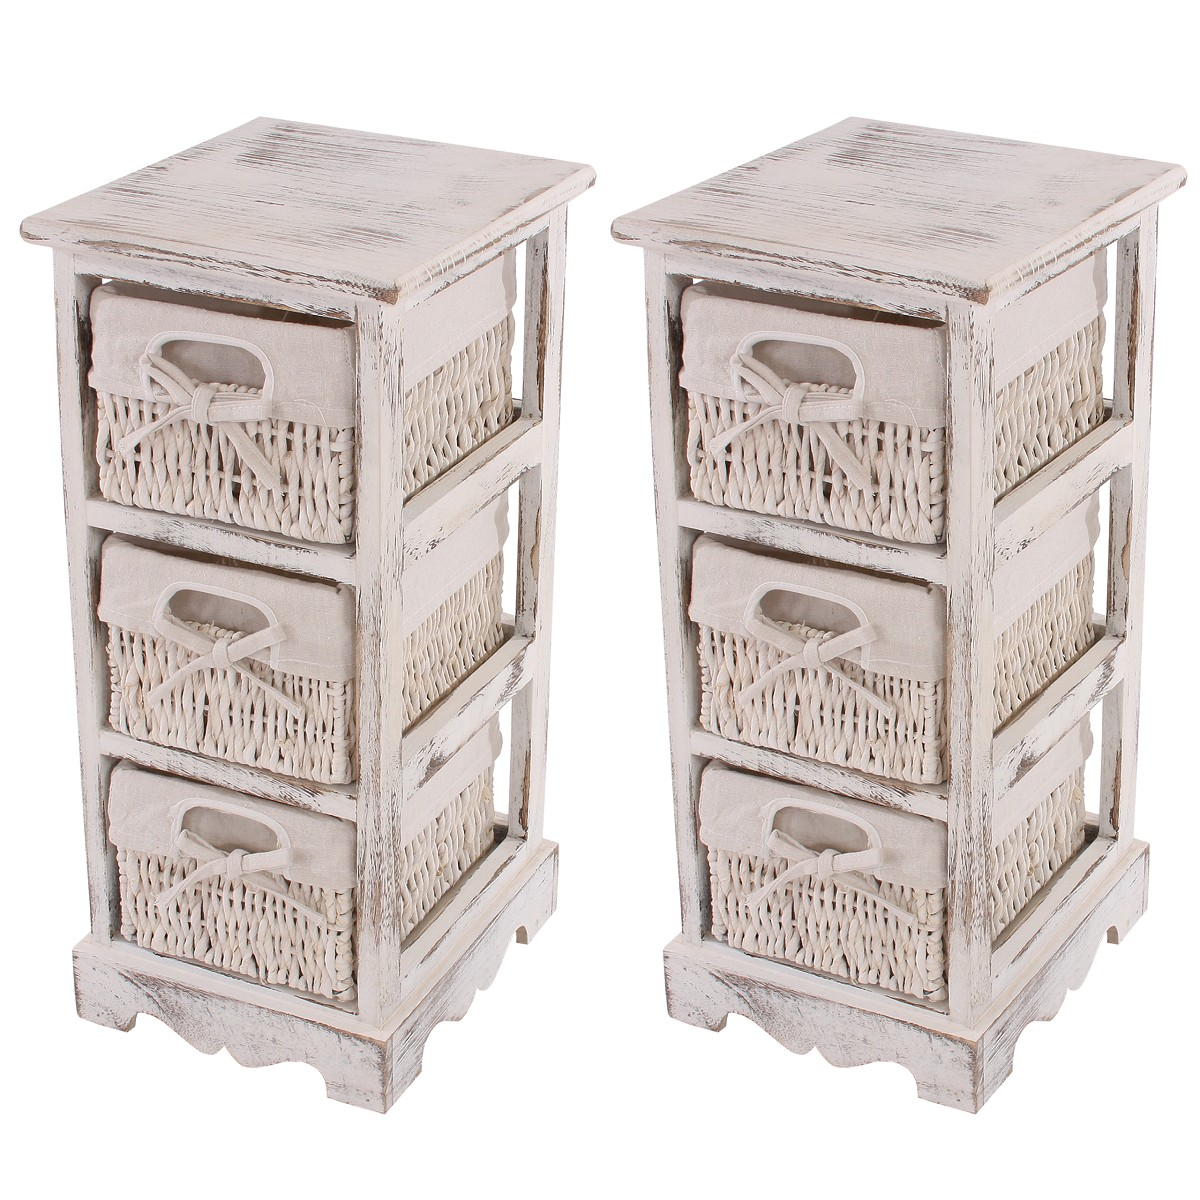 2x shabby kommode 3 schubladen weiss. Black Bedroom Furniture Sets. Home Design Ideas